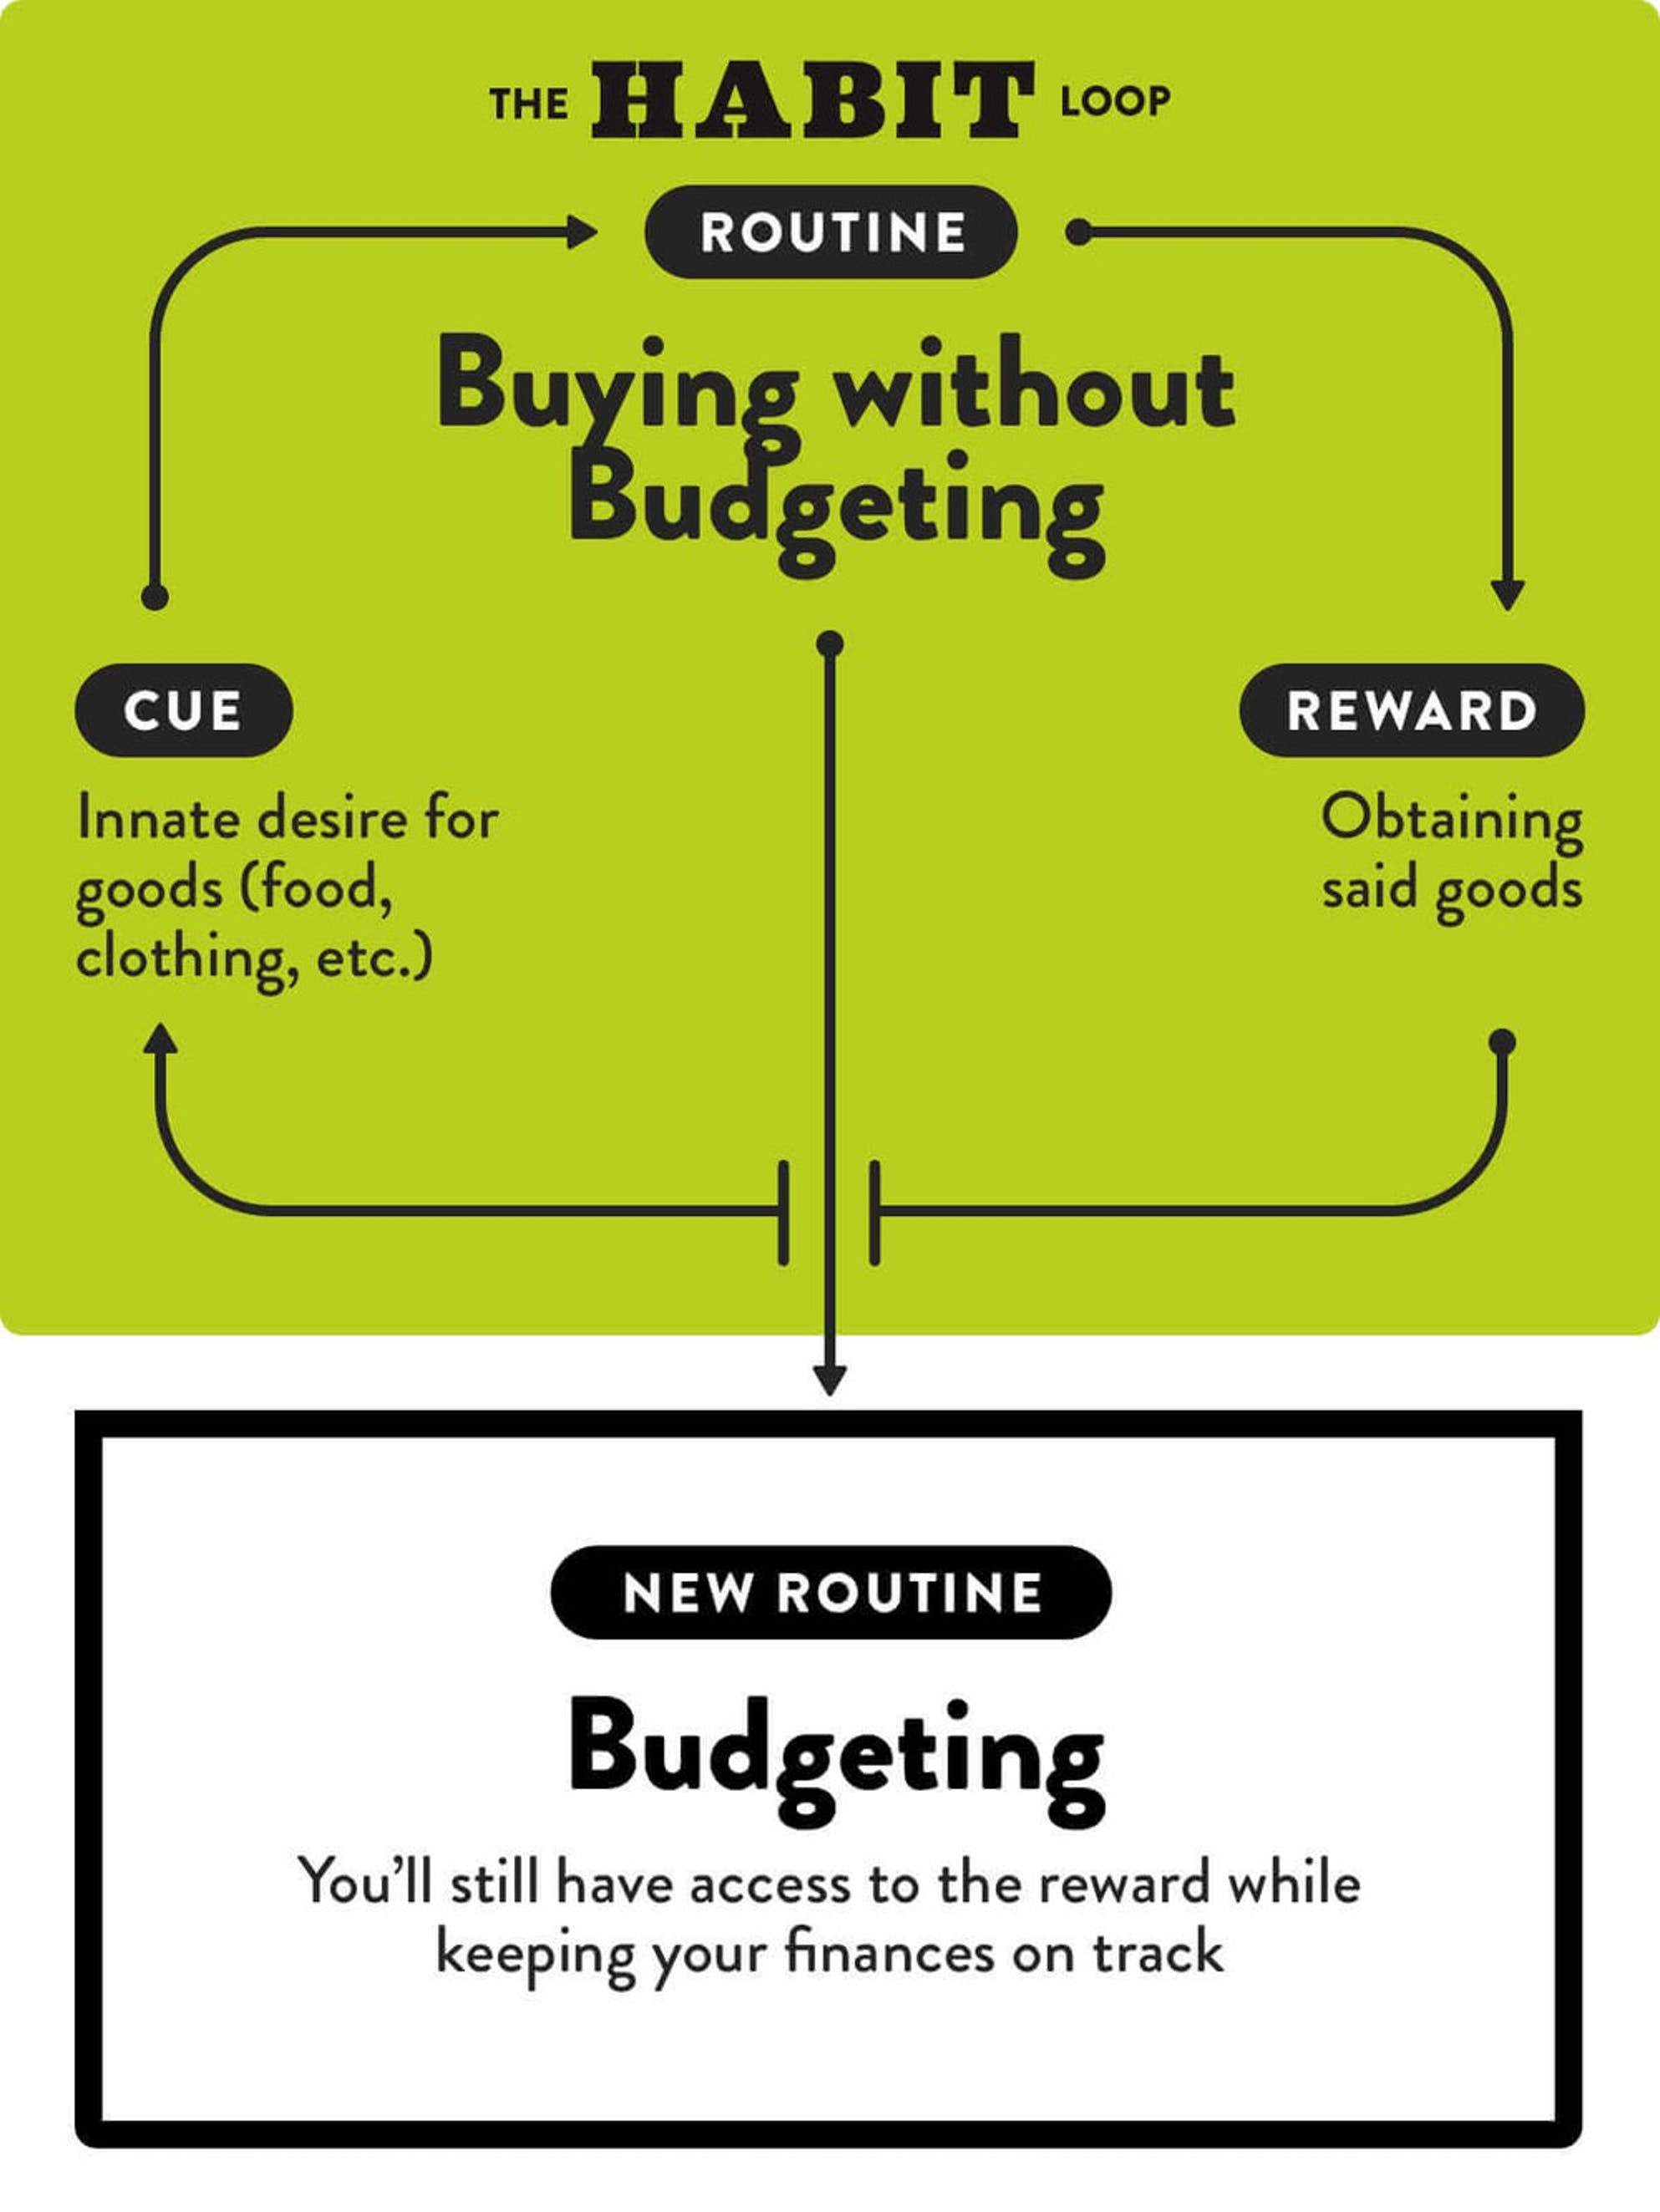 How to spend less money: buying without budgeting habit loop